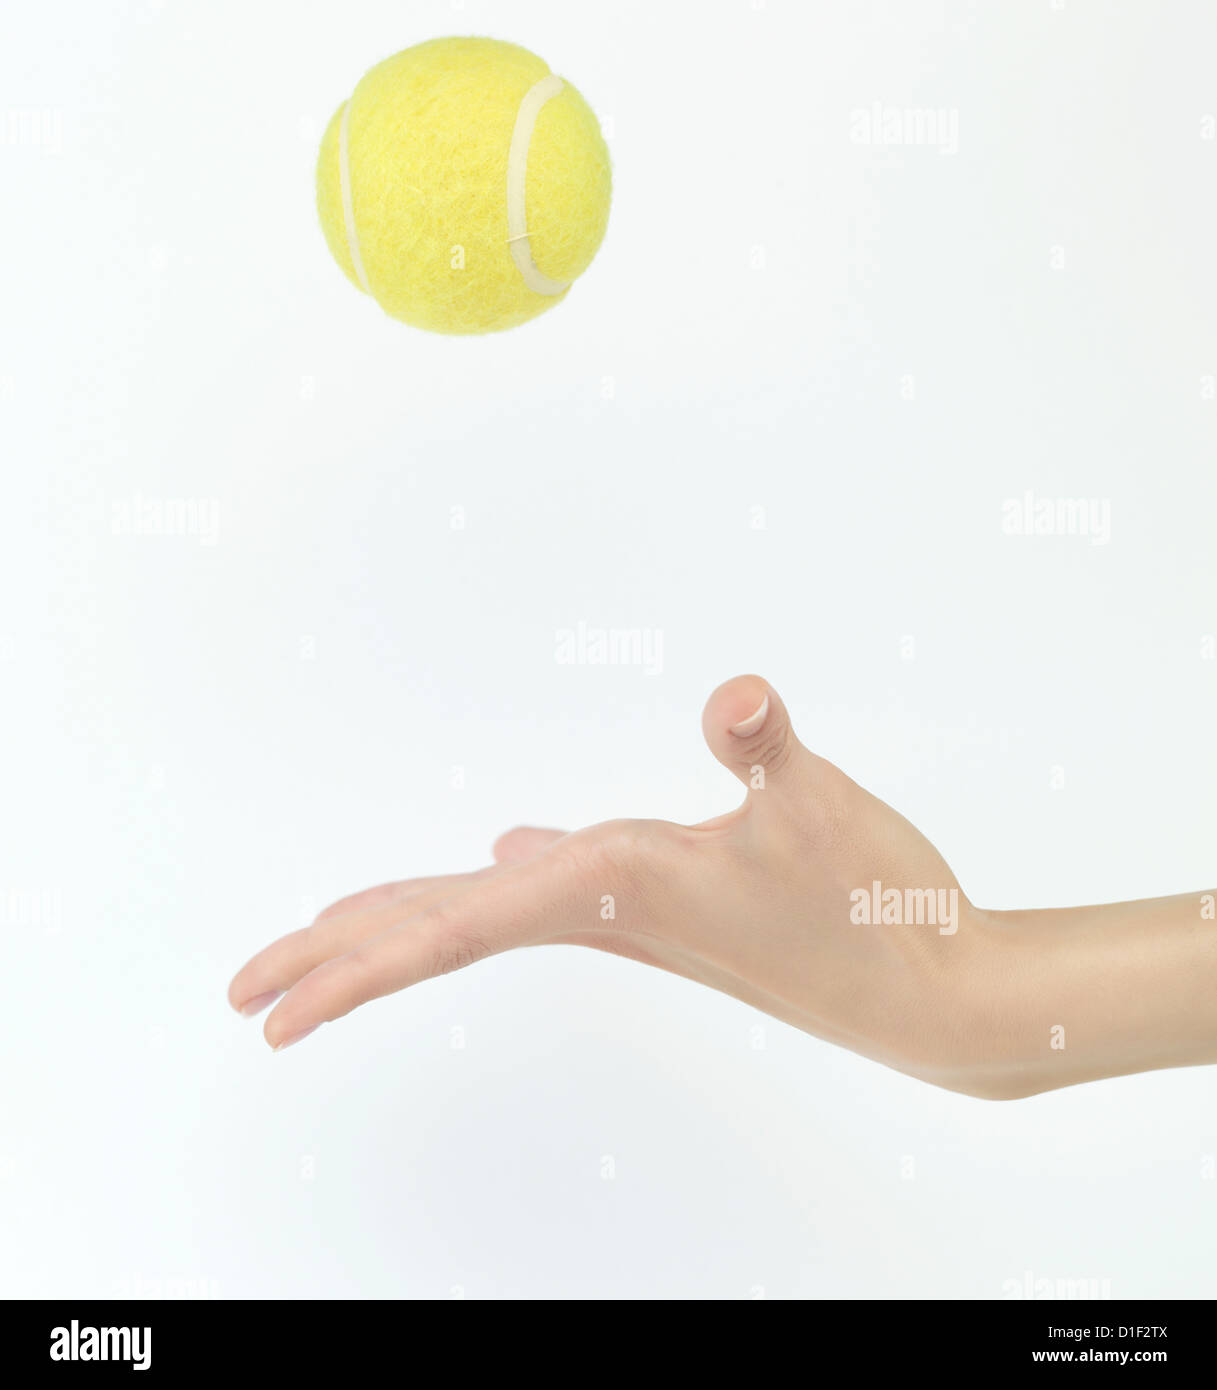 tennis ball thrown up in hand isolated on white background - Stock Image